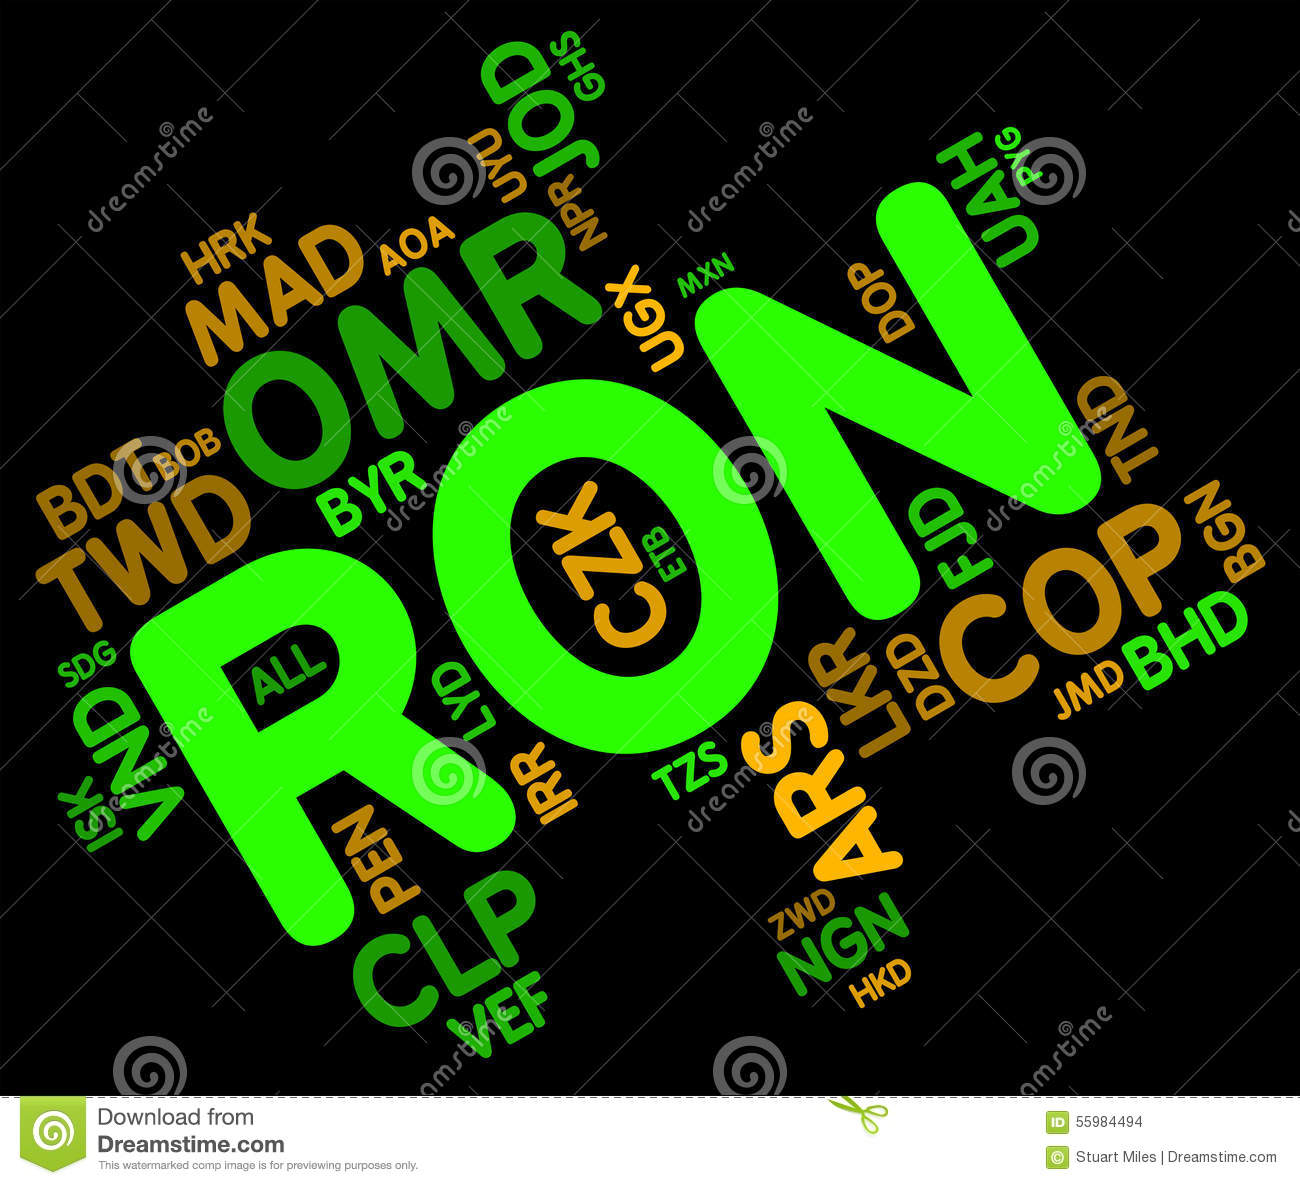 Ron Currency Represents Forex Trading y monedas